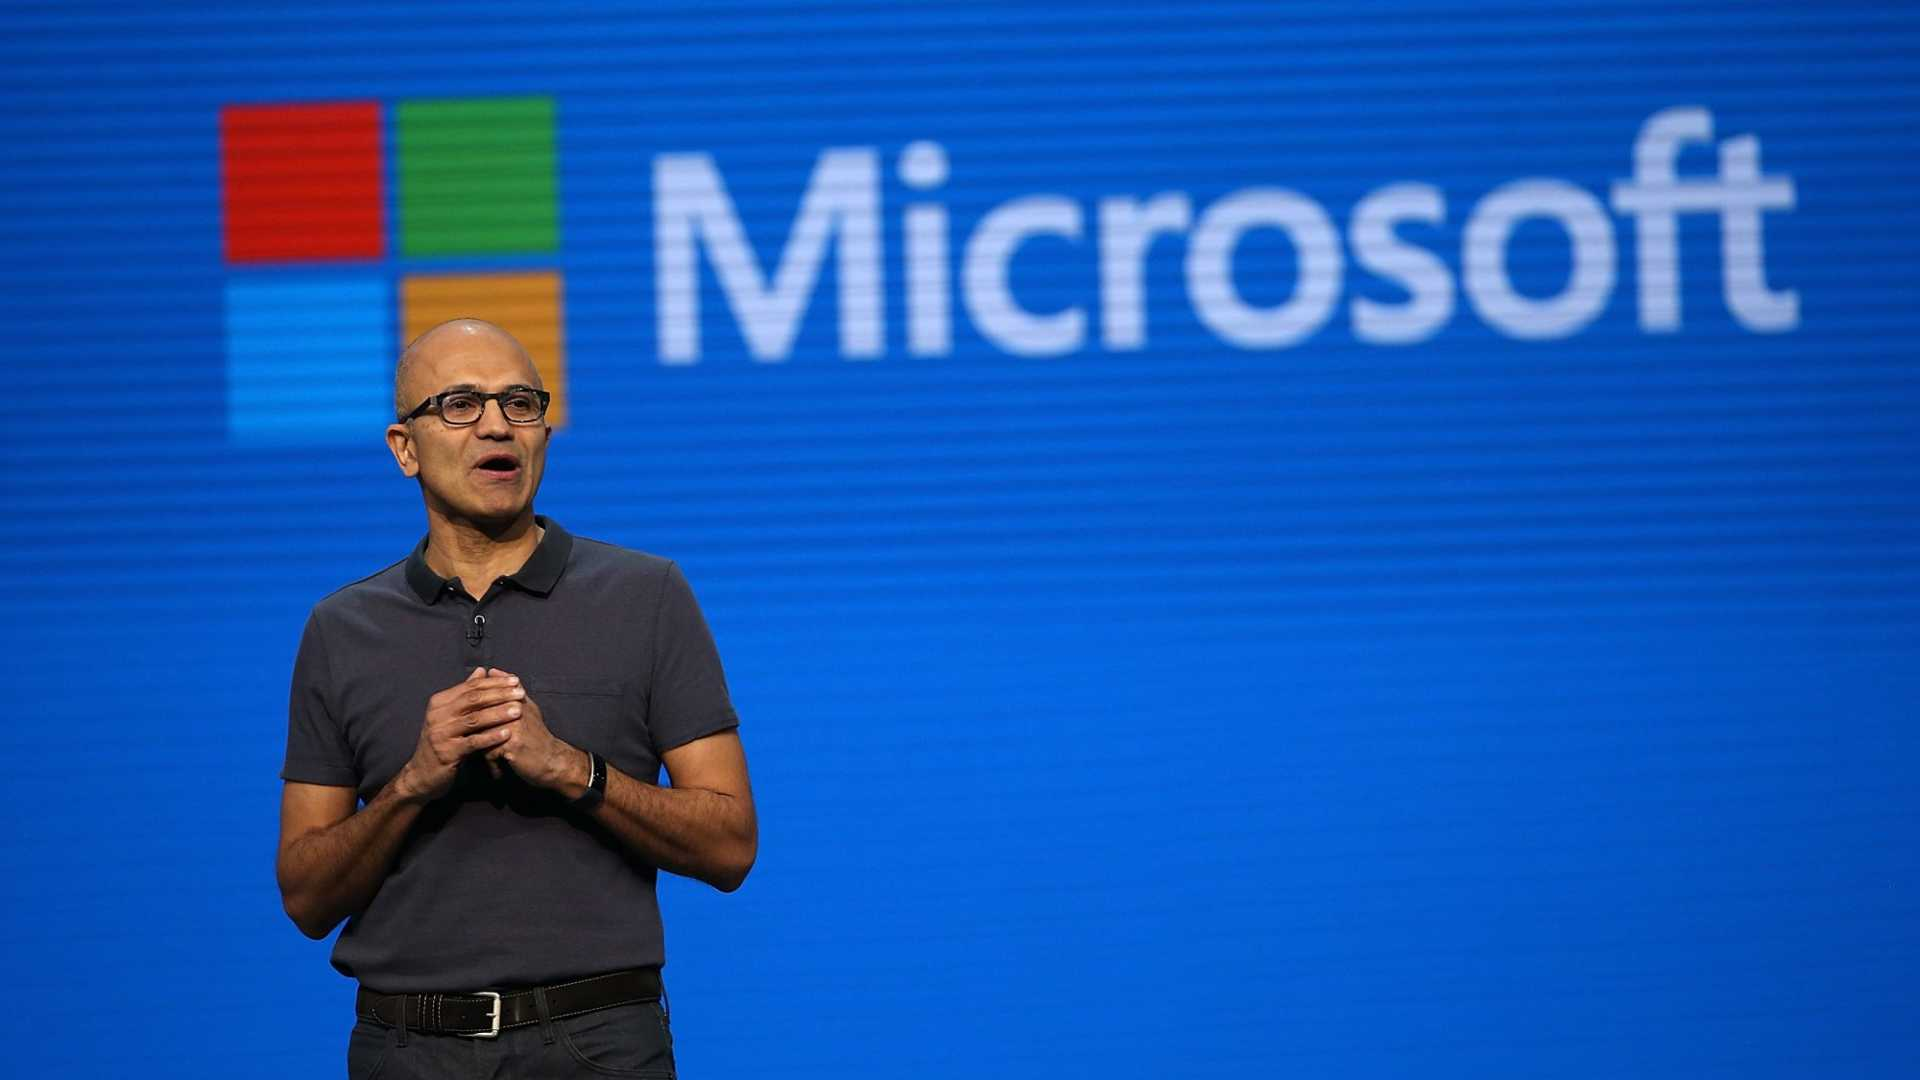 In One Short Sentence, Microsoft CEO Satya Nadella Explained the Flaw With Bill Gates' Original Mission